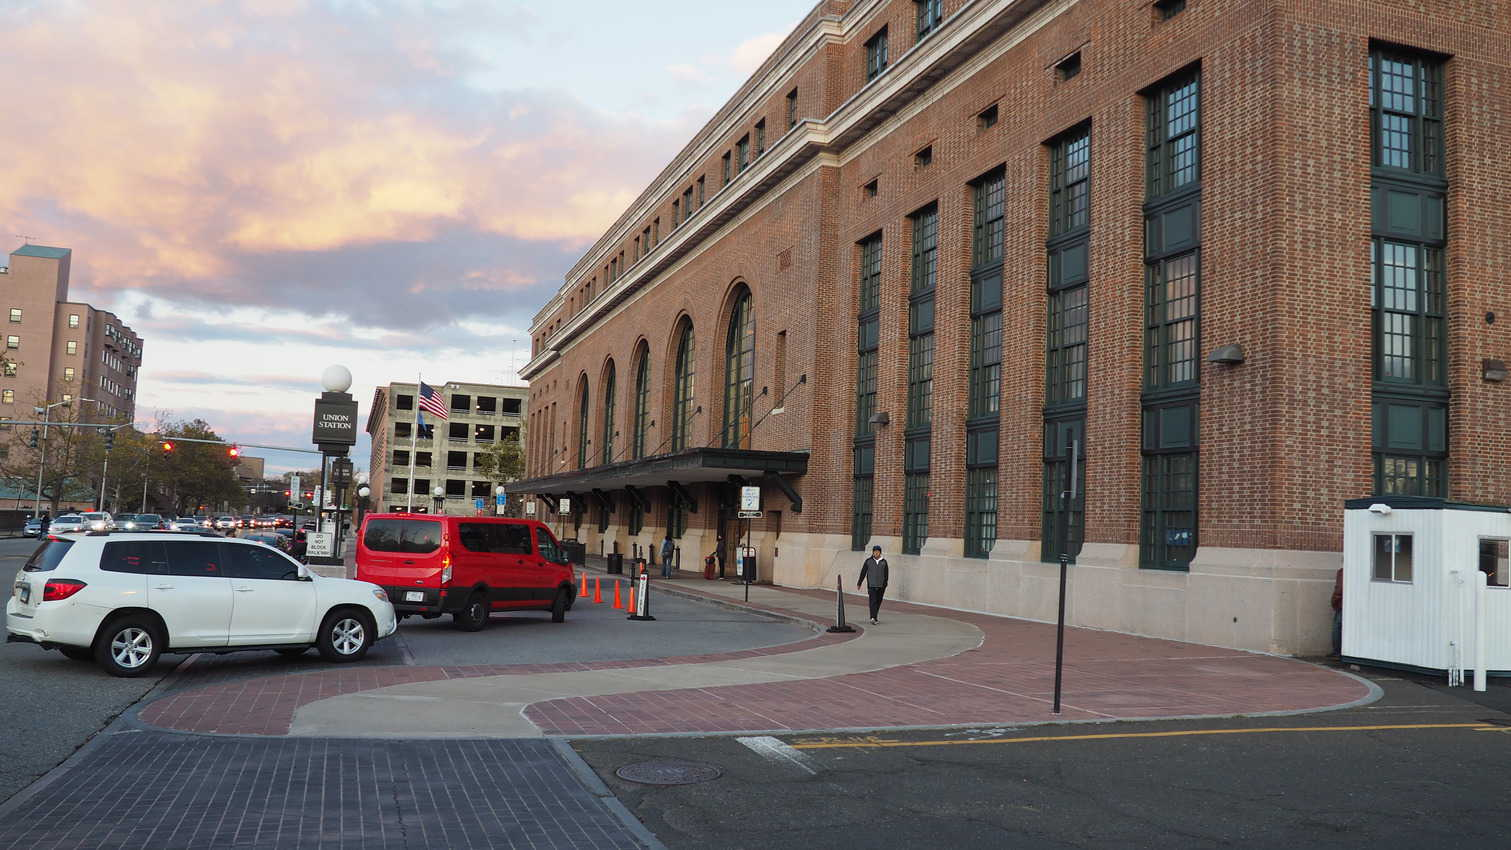 Union Station, Springfield, Massachusetts. It's a train and a bus station and a central hub in the city.